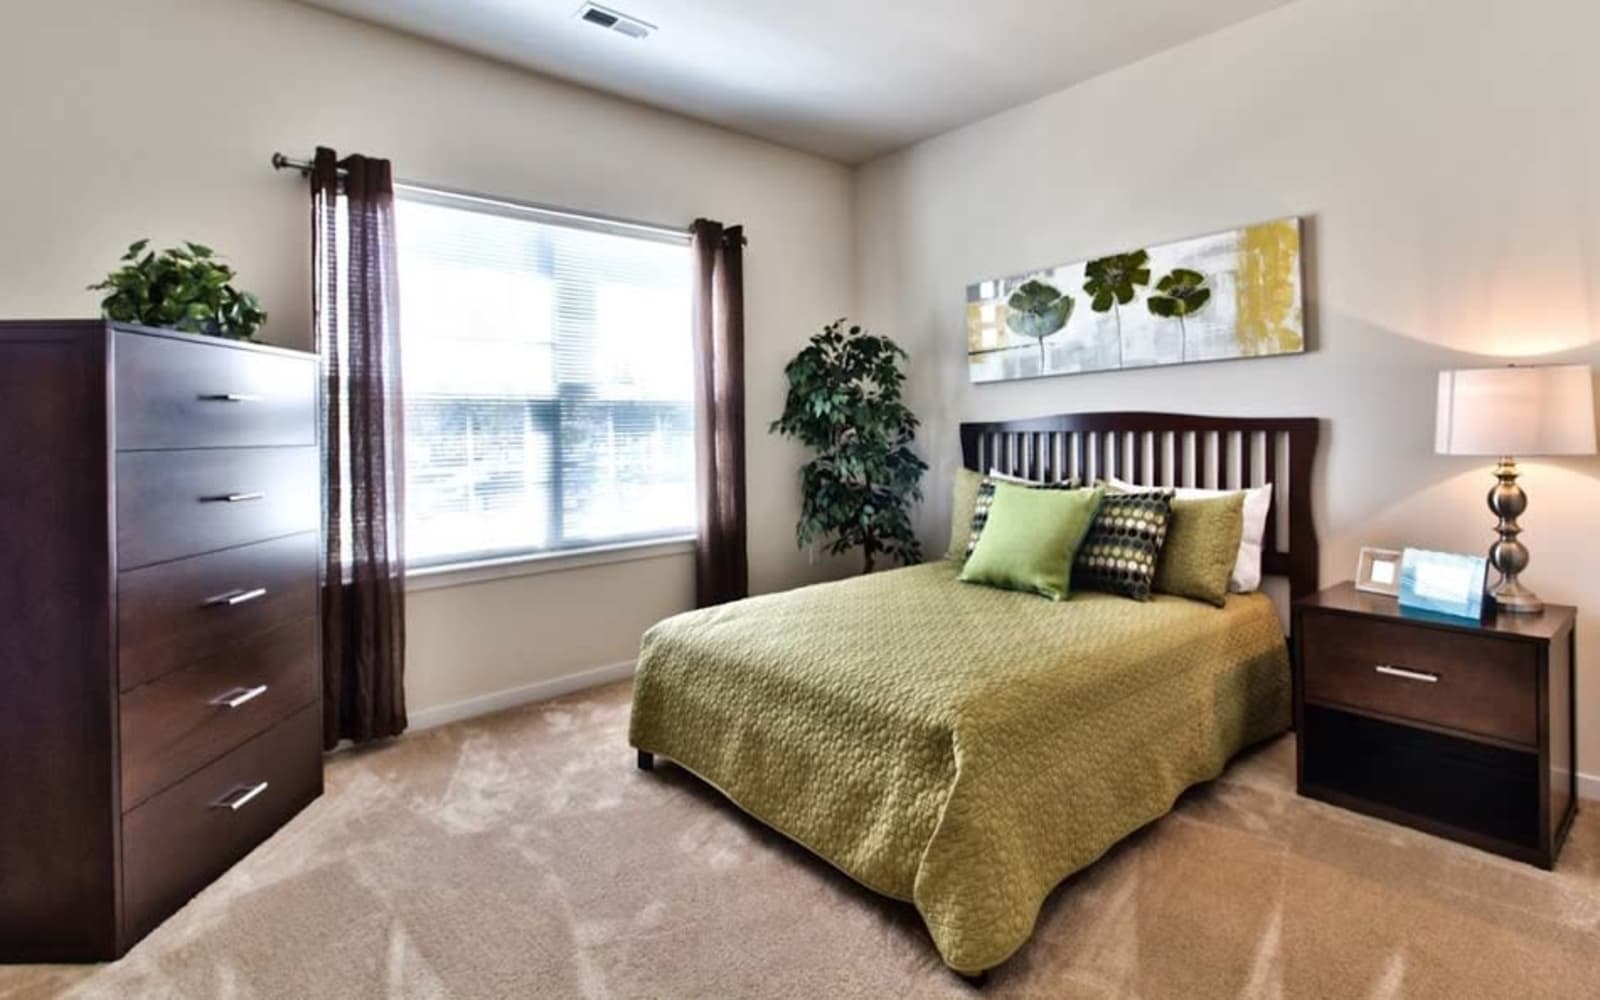 Bedrooms with natural light at Aventura at Richmond in Saint Peters, Missouri.